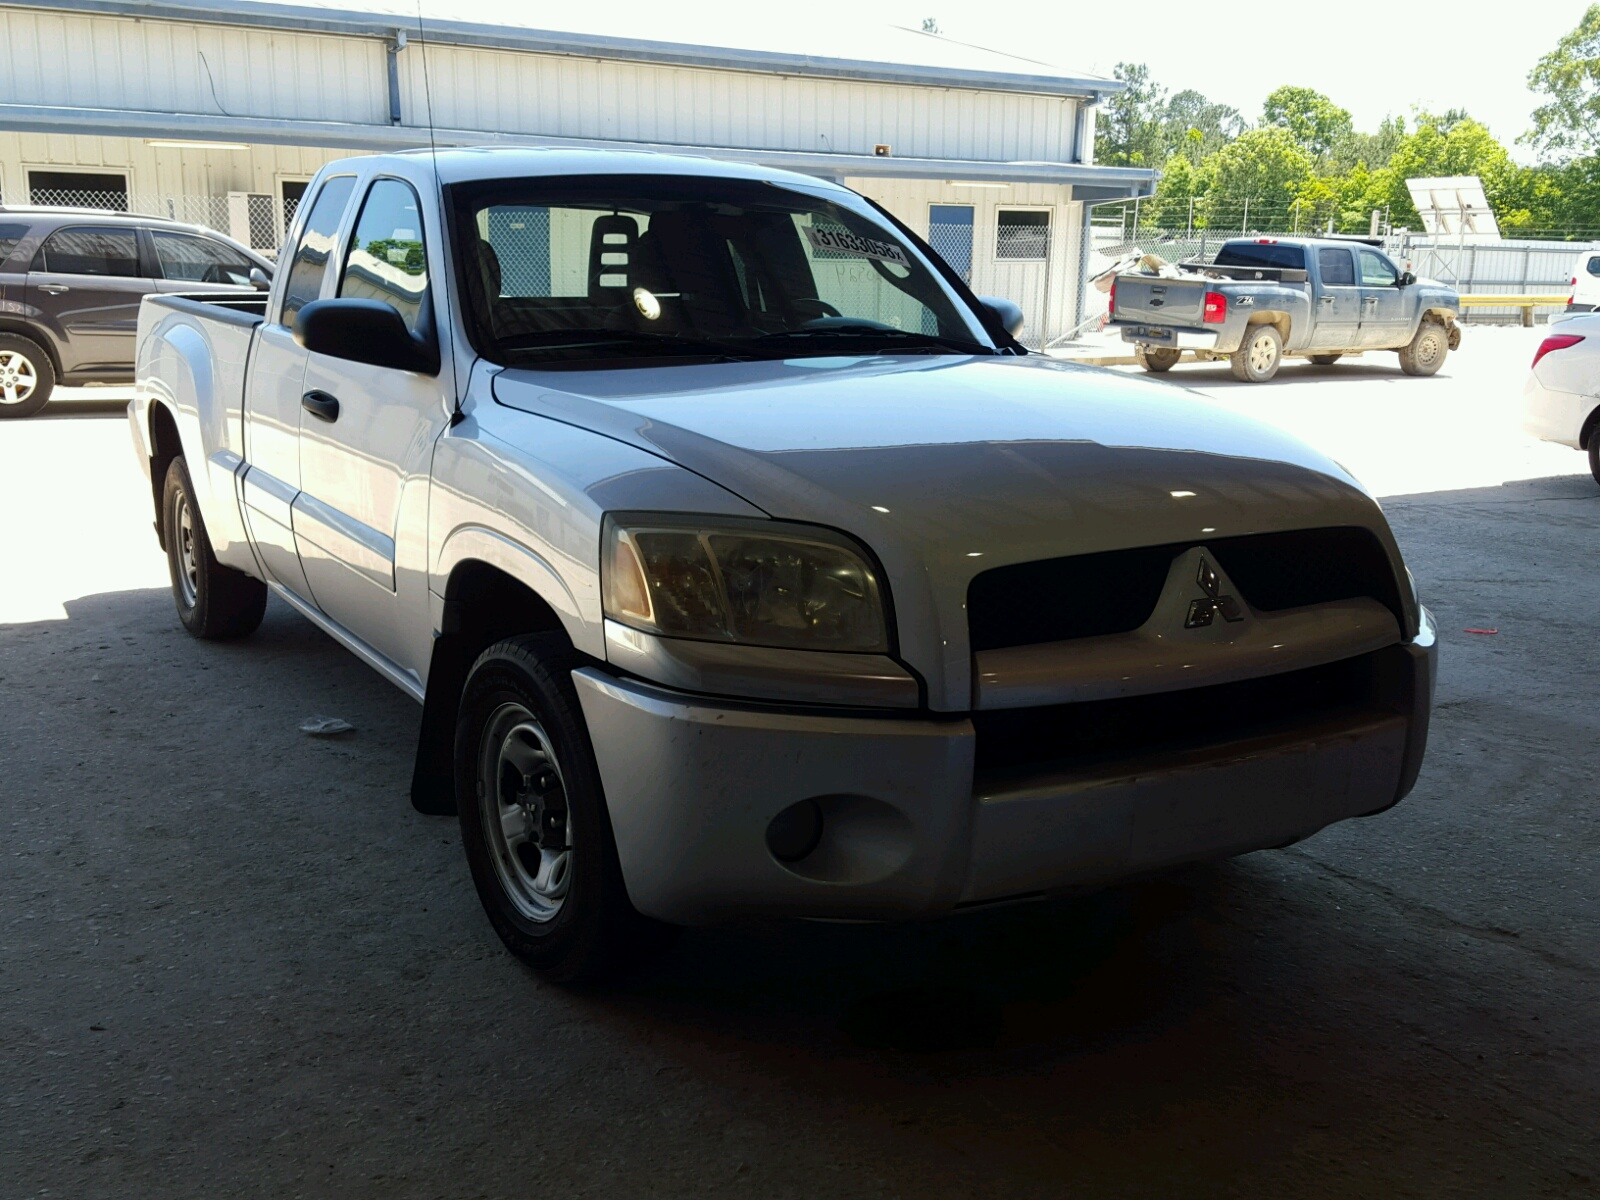 of on carfinder ls title auto online for certificate lot red raider mitsubishi in copart auctions ga sale tifton en